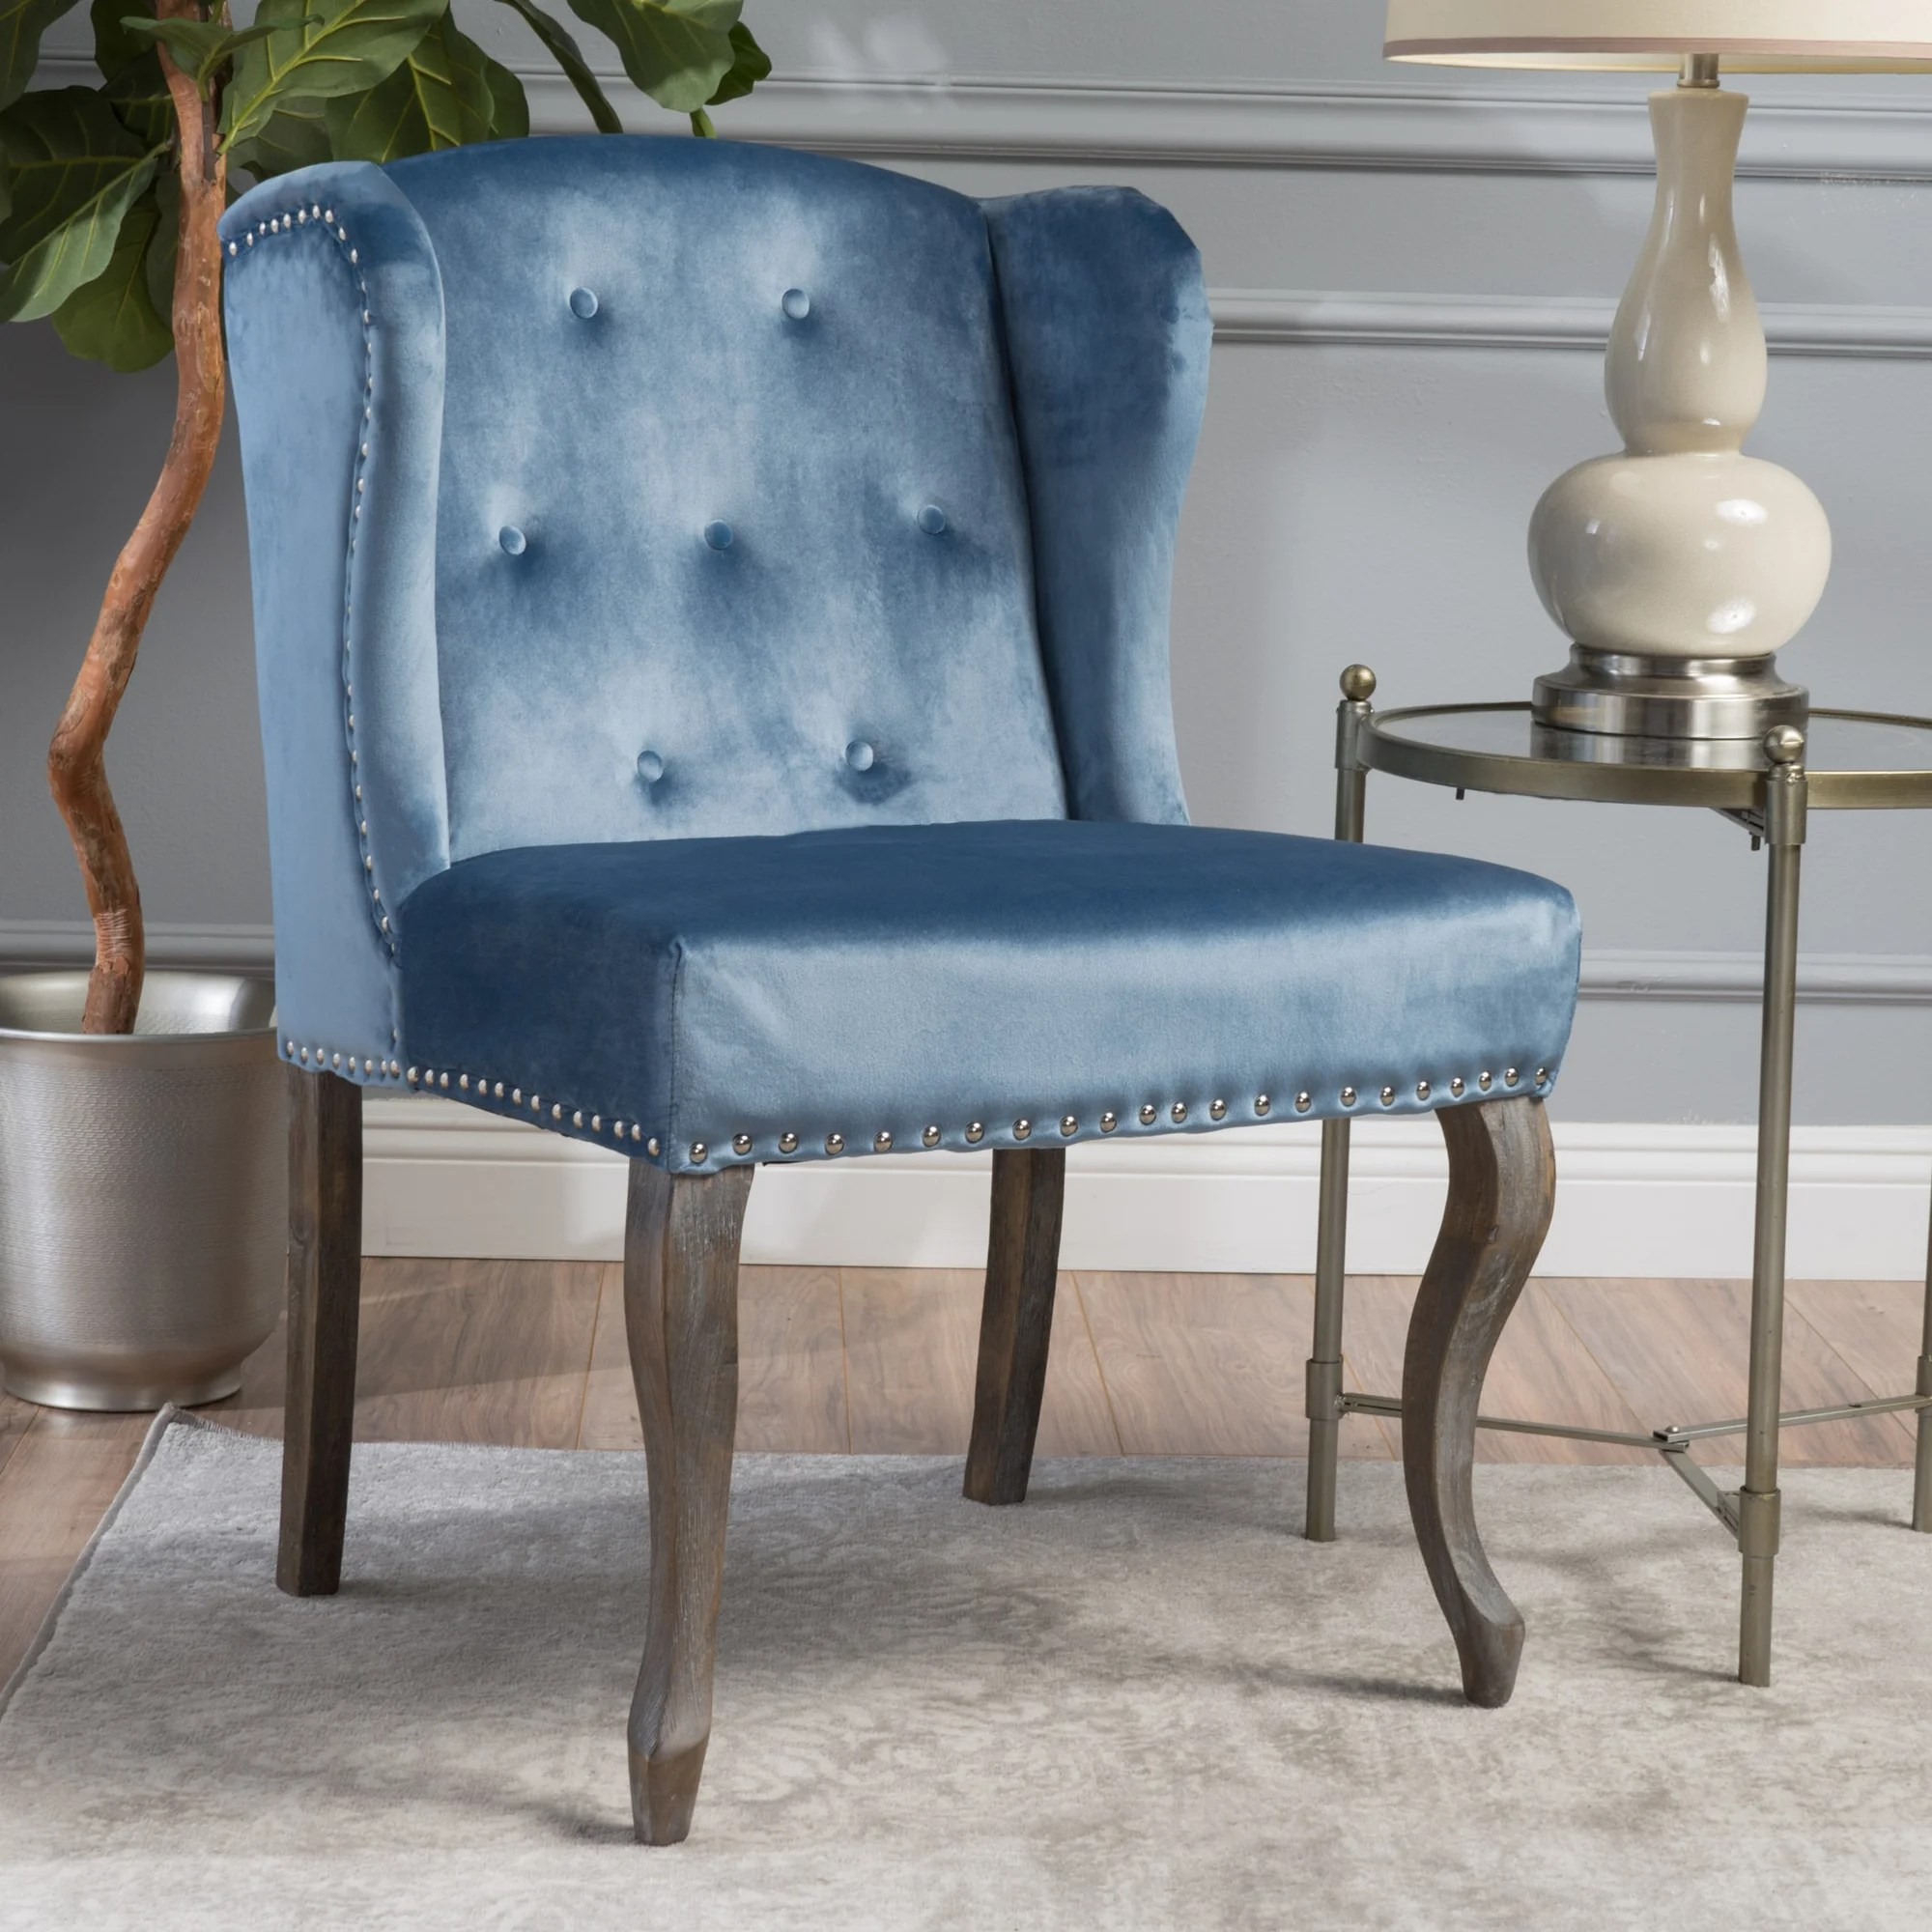 Teal Wingback Chair Details About Mercer41 Hollange Wingback Chair